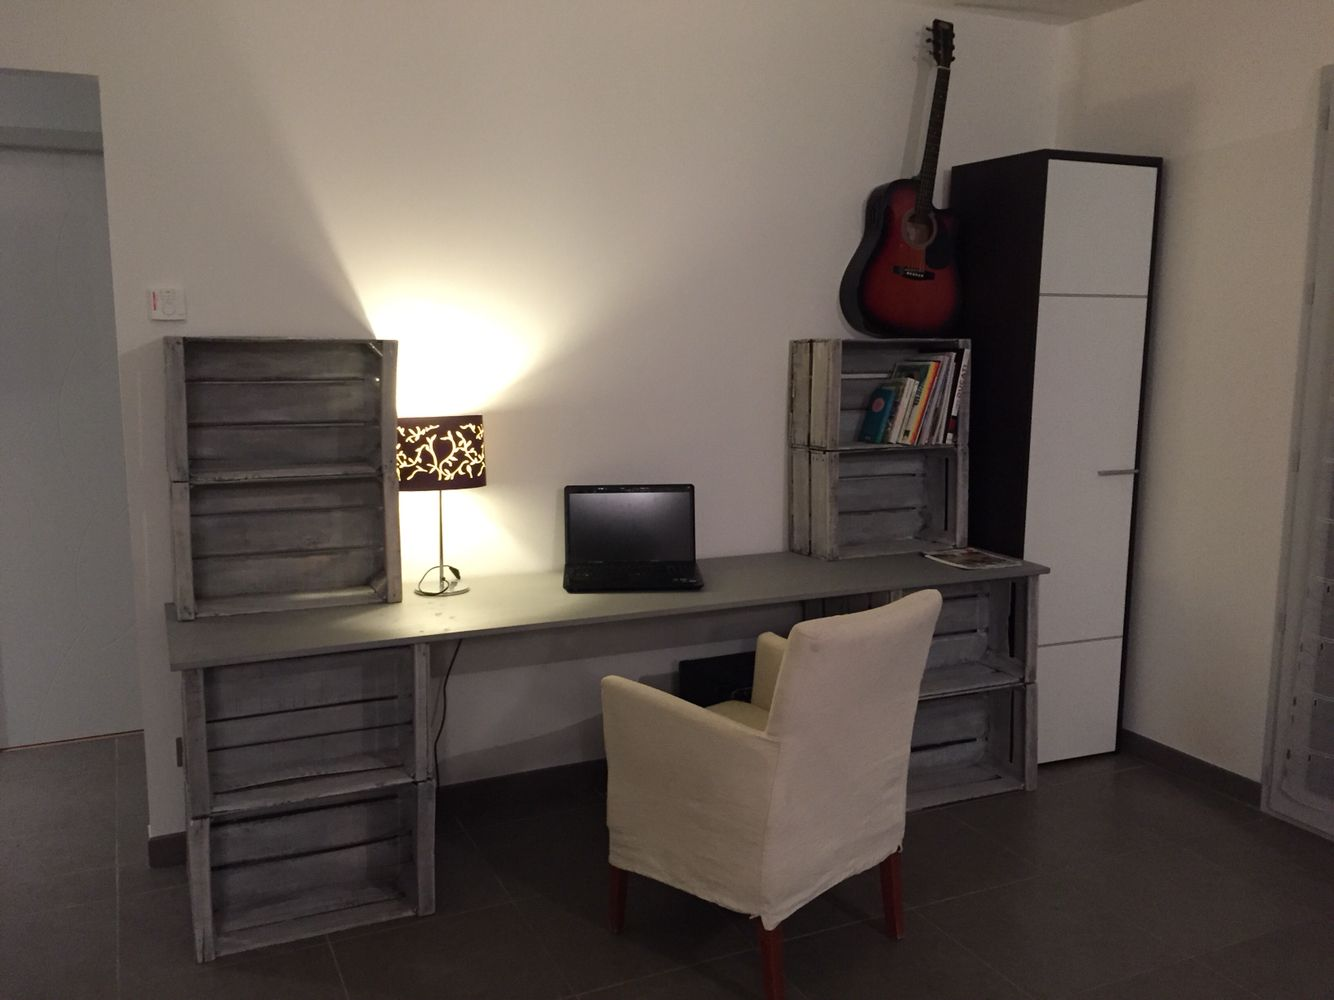 bureau en caisse de pomme id es d co pinterest bureau en caisse caisses de pommes et caisse. Black Bedroom Furniture Sets. Home Design Ideas